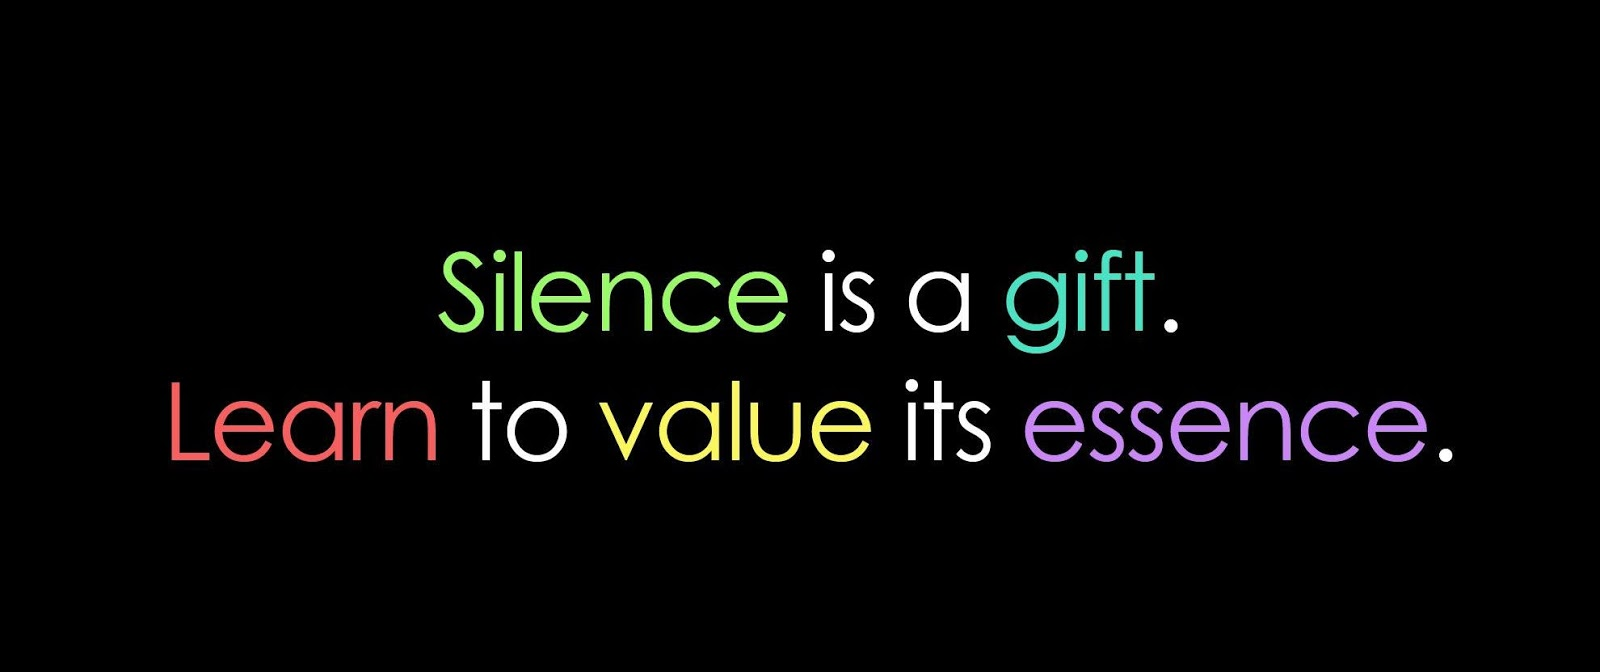 Best Quotes On Silence Best Quotes And Sayings